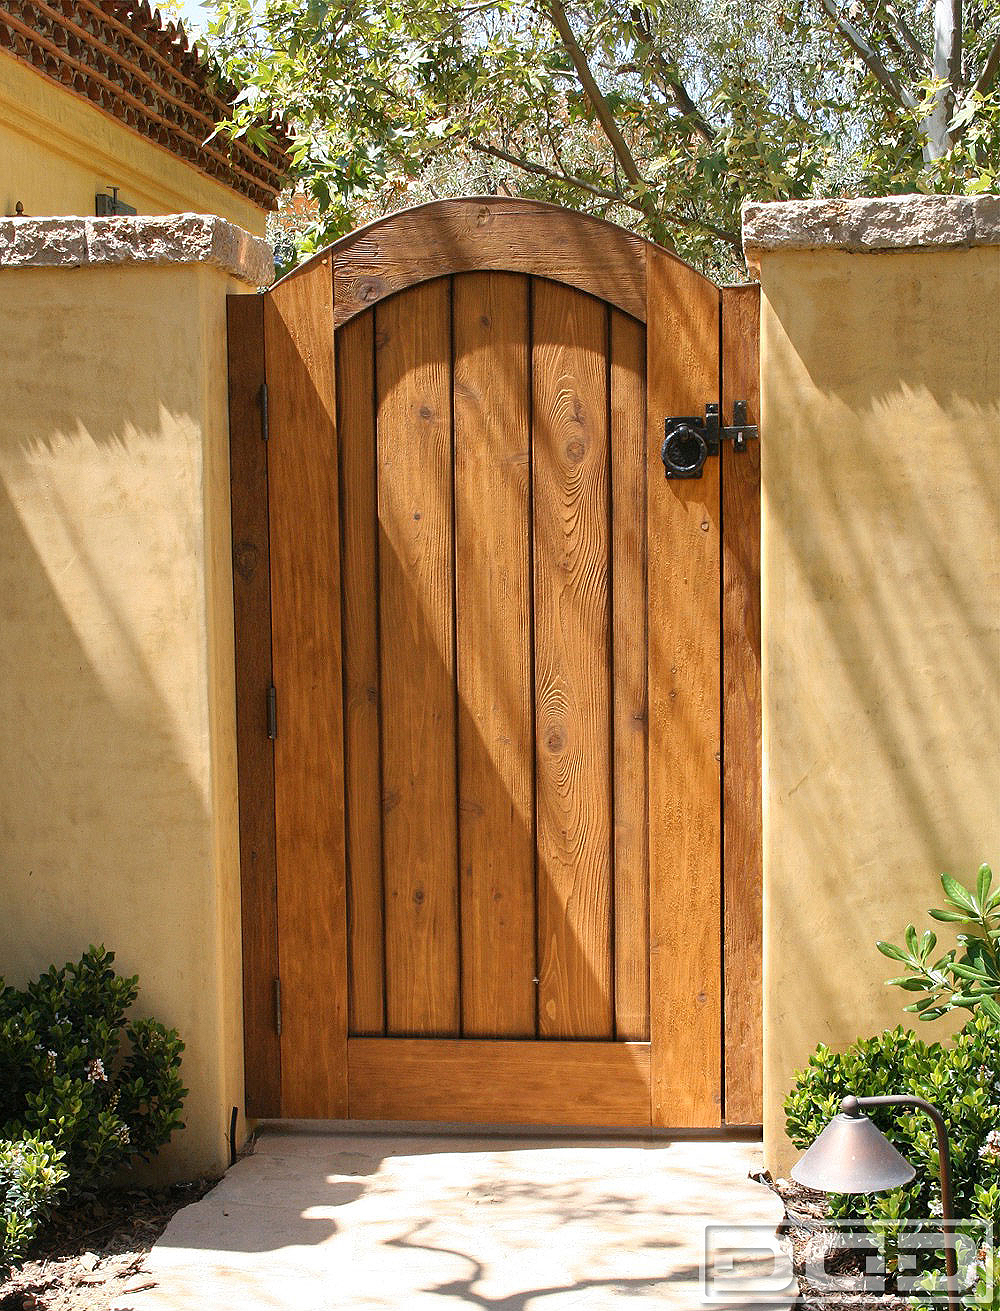 Architectural gates 14 custom designer pedestrian gate for Garden gate designs wood rustic